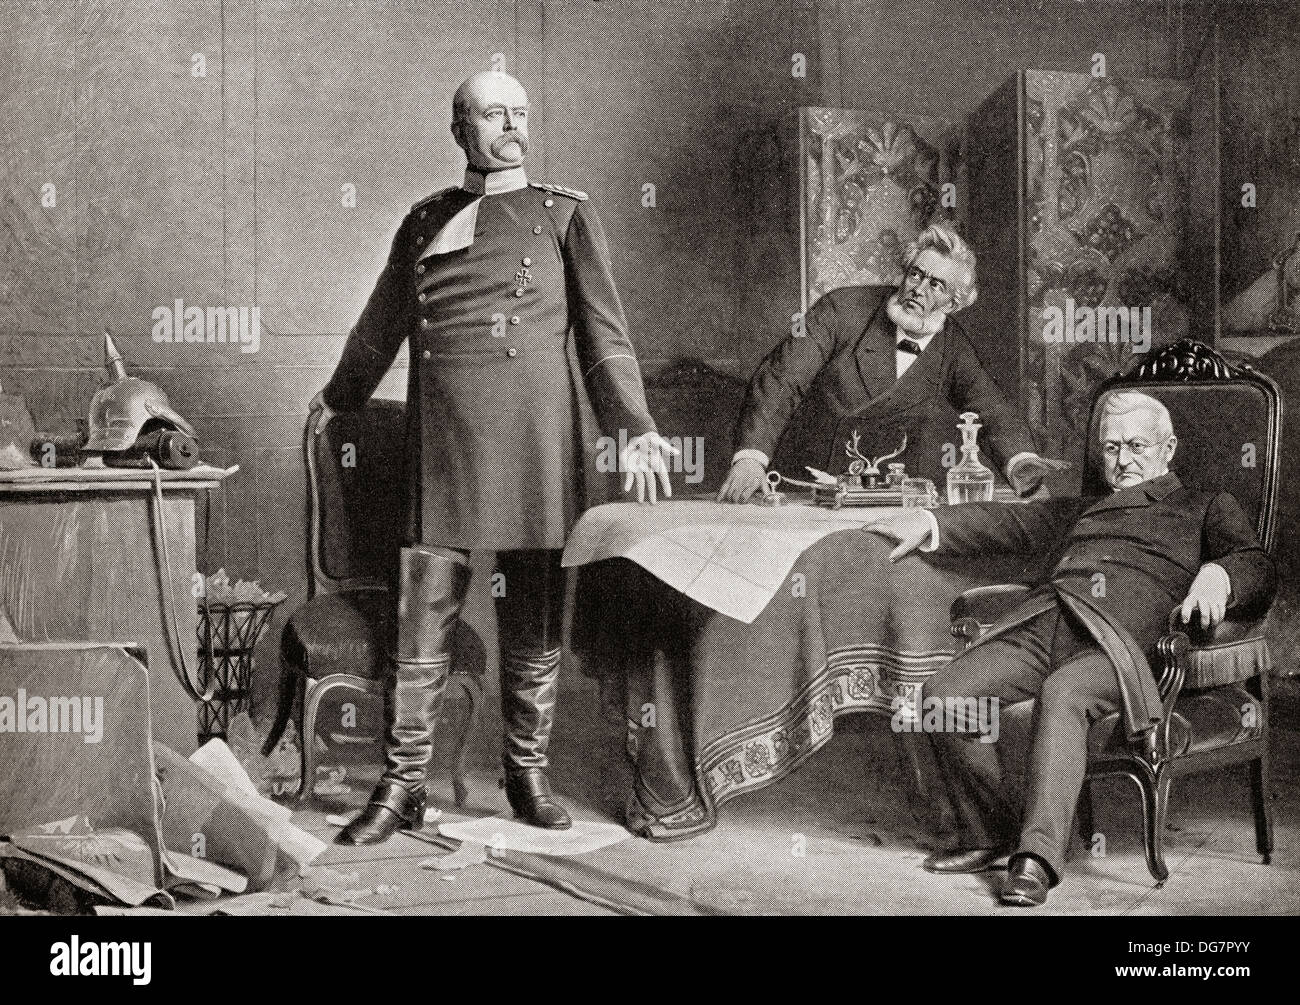 Otto von Bismarck, left, and Adolphe Thiers, seated far right, at the Palace of Versailles, France, 1871. - Stock Image